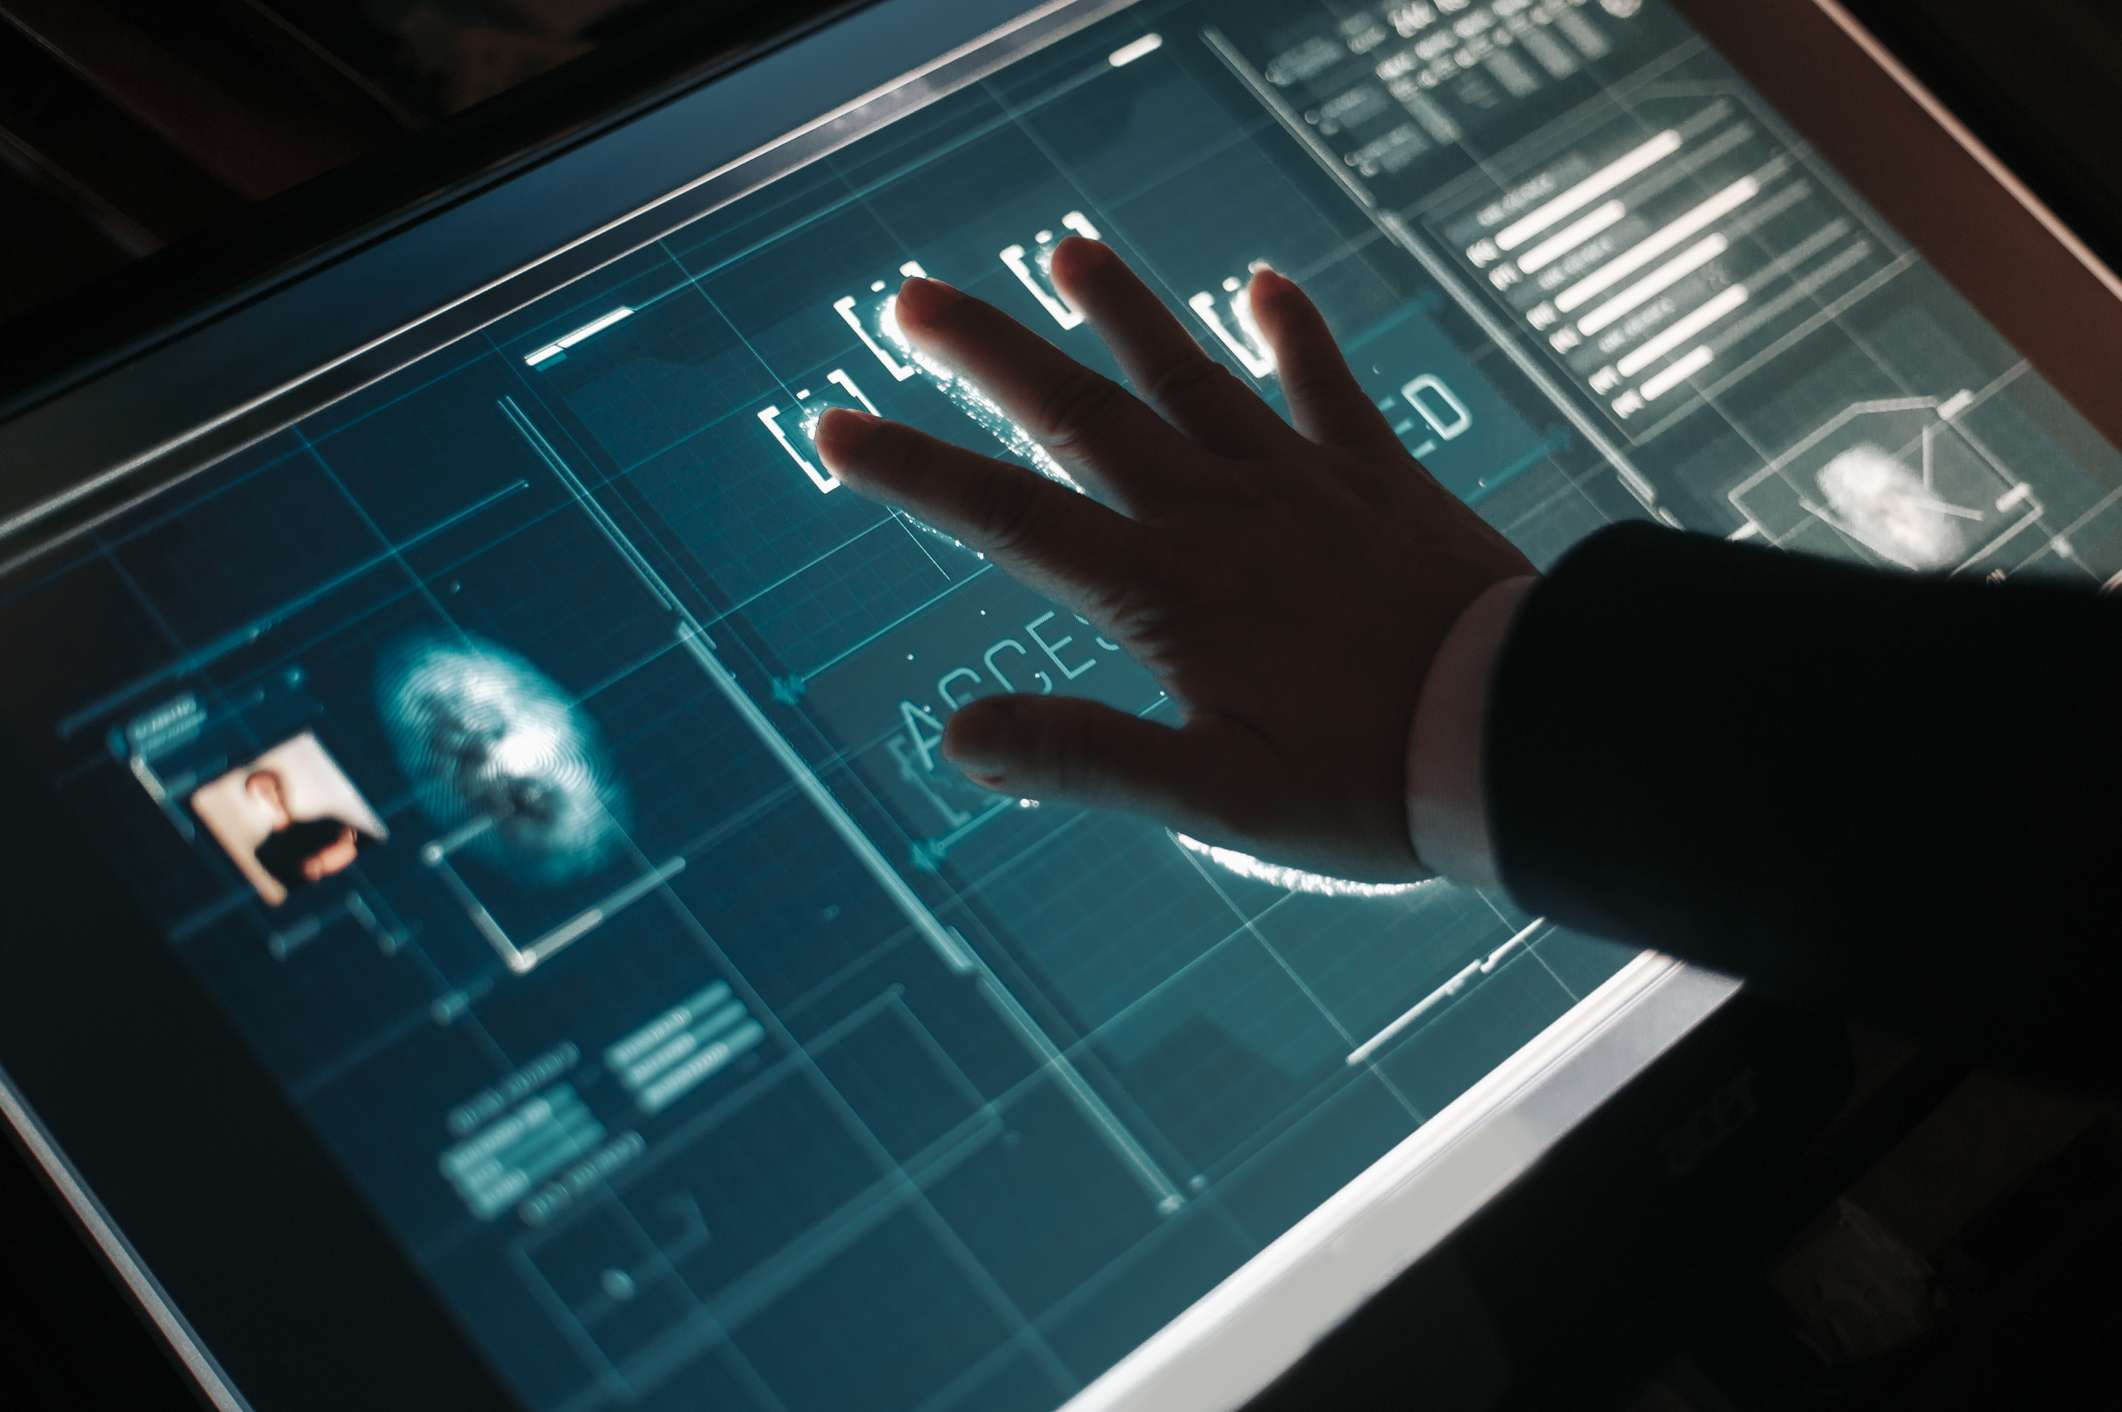 Someone's palm being scanned by a biometric scanner.